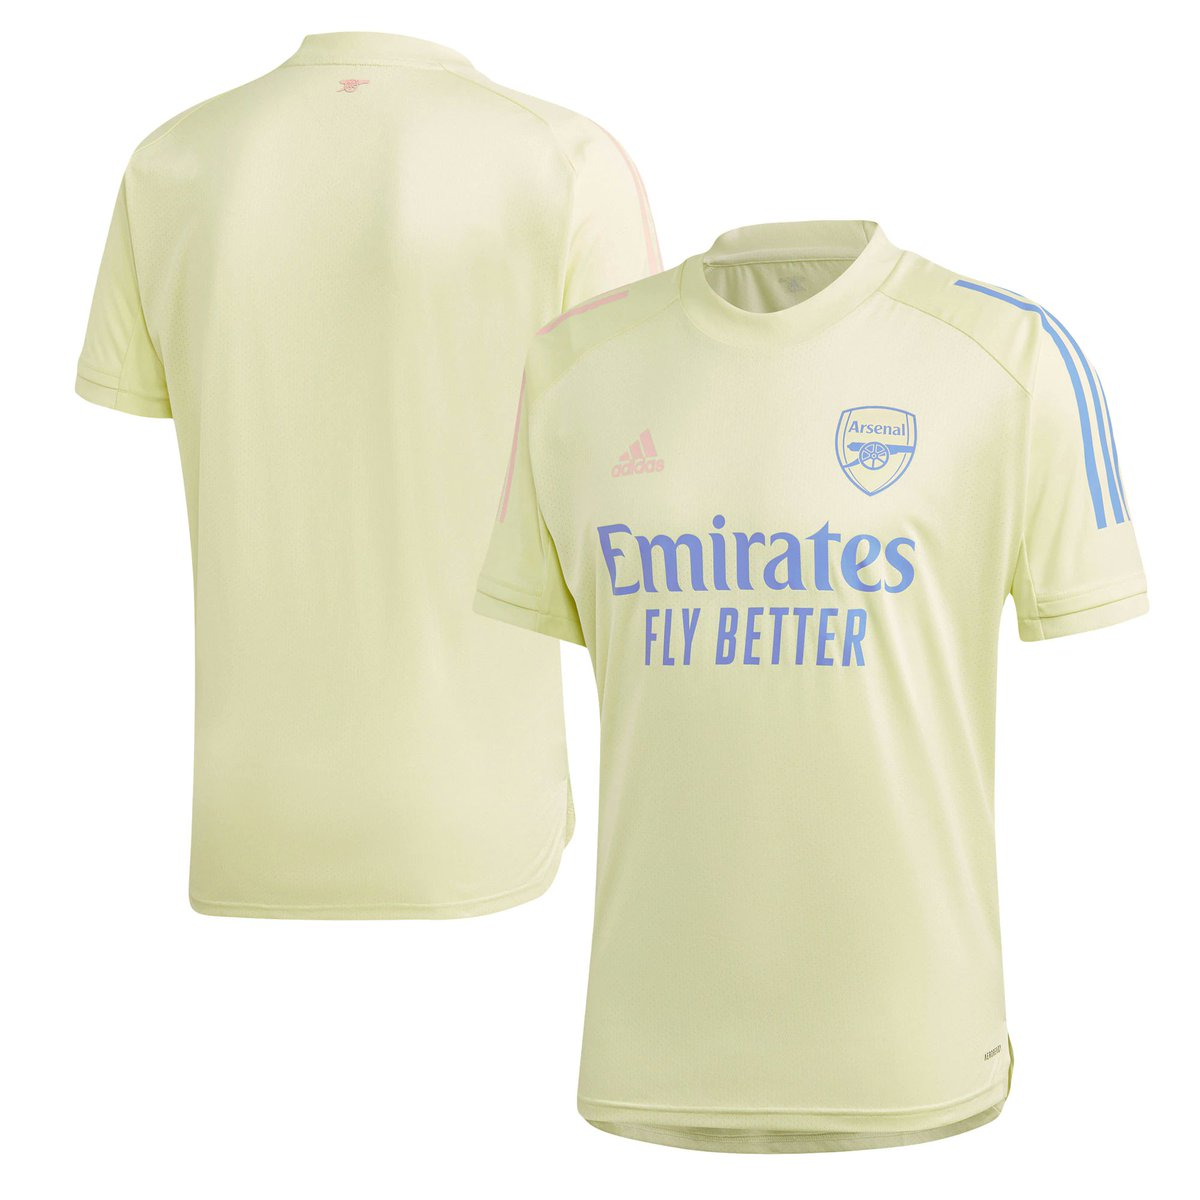 GIVEAWAY TIME!!! If Arsenal beat Wolves today I'll select a random person to win one of these tops of your choice. I'll dm the winner and ask what colour and size you'd like and send it to your ADDRESS! To enter RT this tweet, like and follow me. Goodluck! #COYG<br>http://pic.twitter.com/GN6NZrkB4W